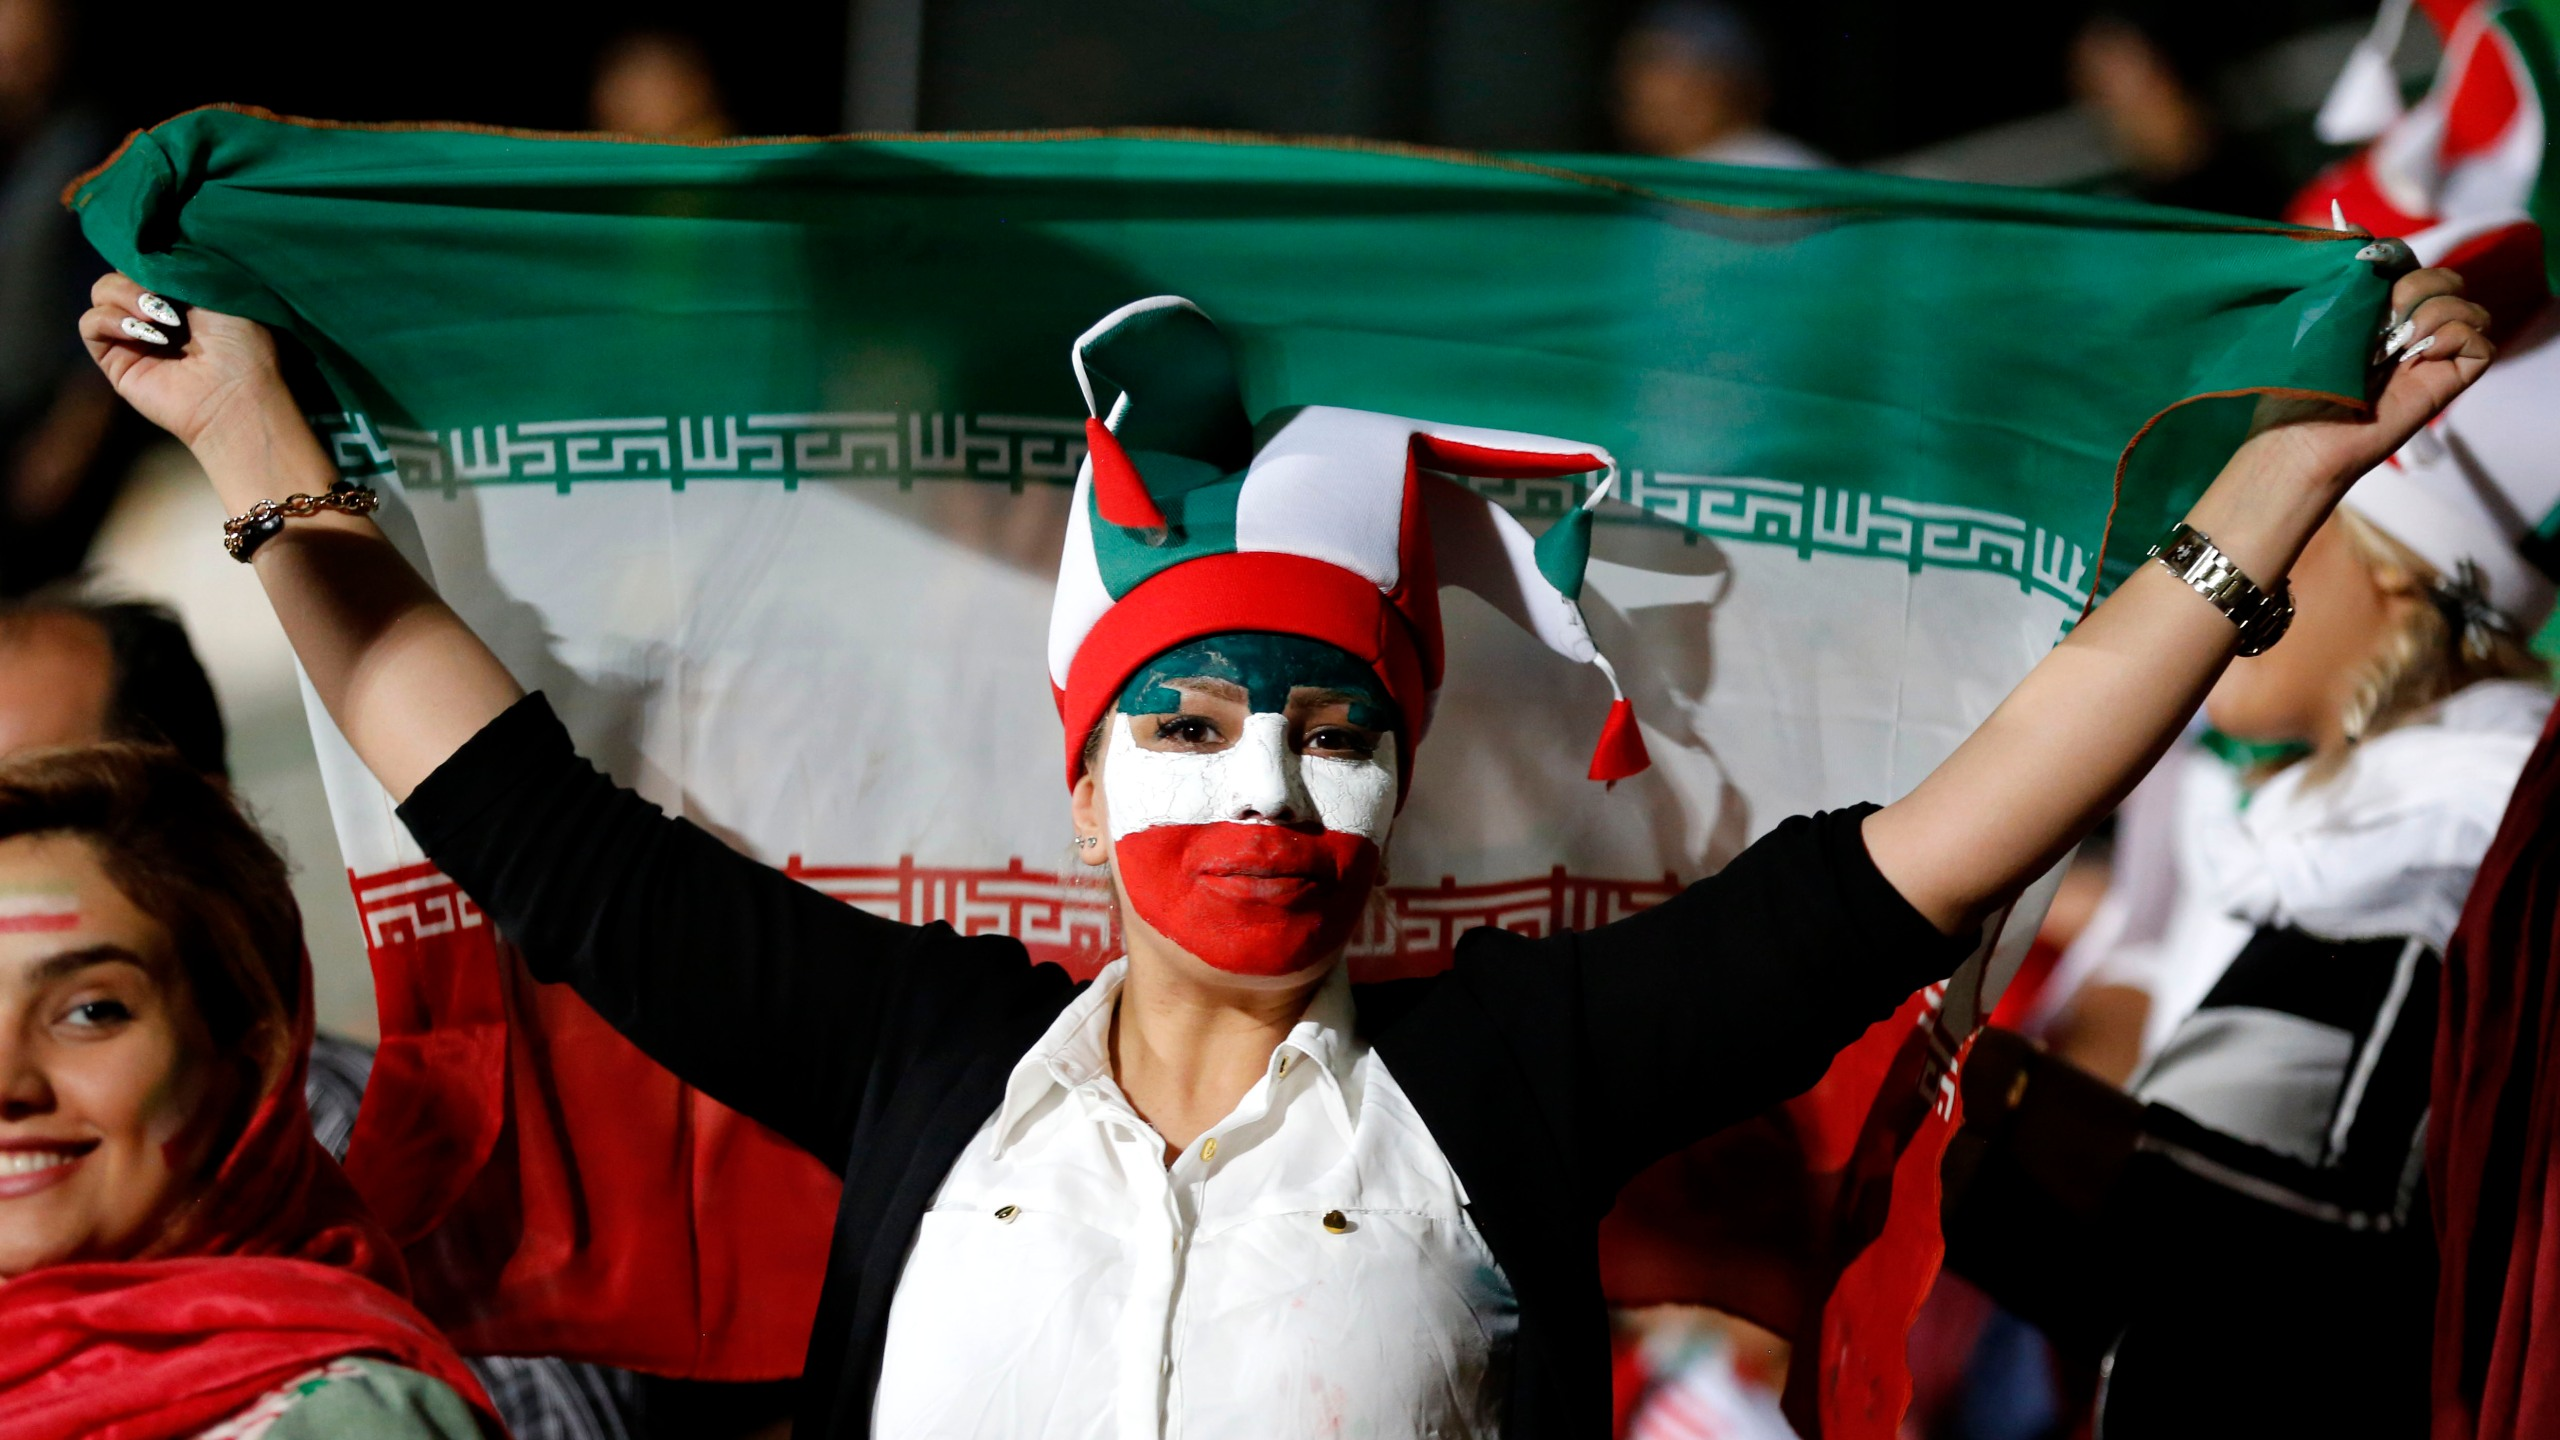 An Iranian woman watches the World Cup soccer match between Portugal and Iran at Azadi stadium in Tehran on June 25, 2018.(Credit: Atta Kenare/AFP/Getty Images)